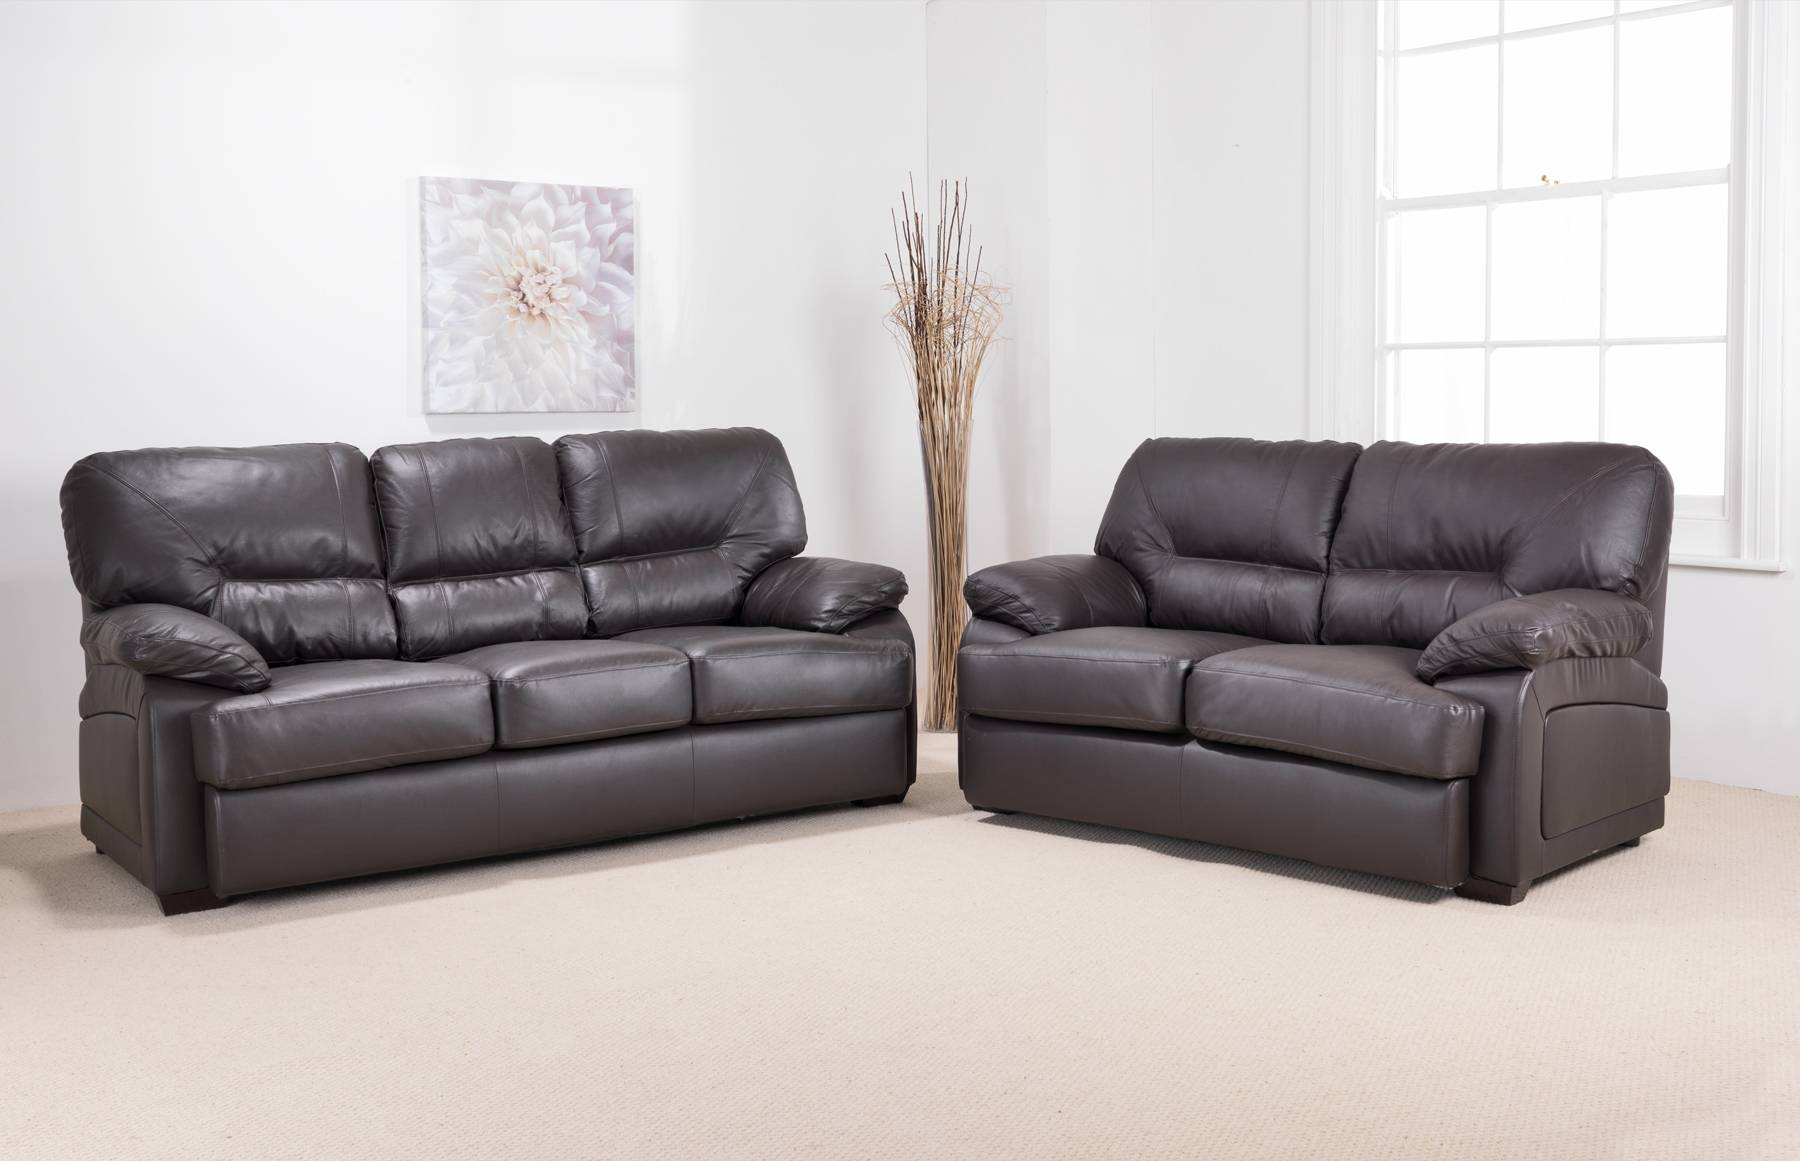 Reputable Back Support Together With Interior Design Spectacular in Black Sofa Slipcovers (Image 9 of 15)